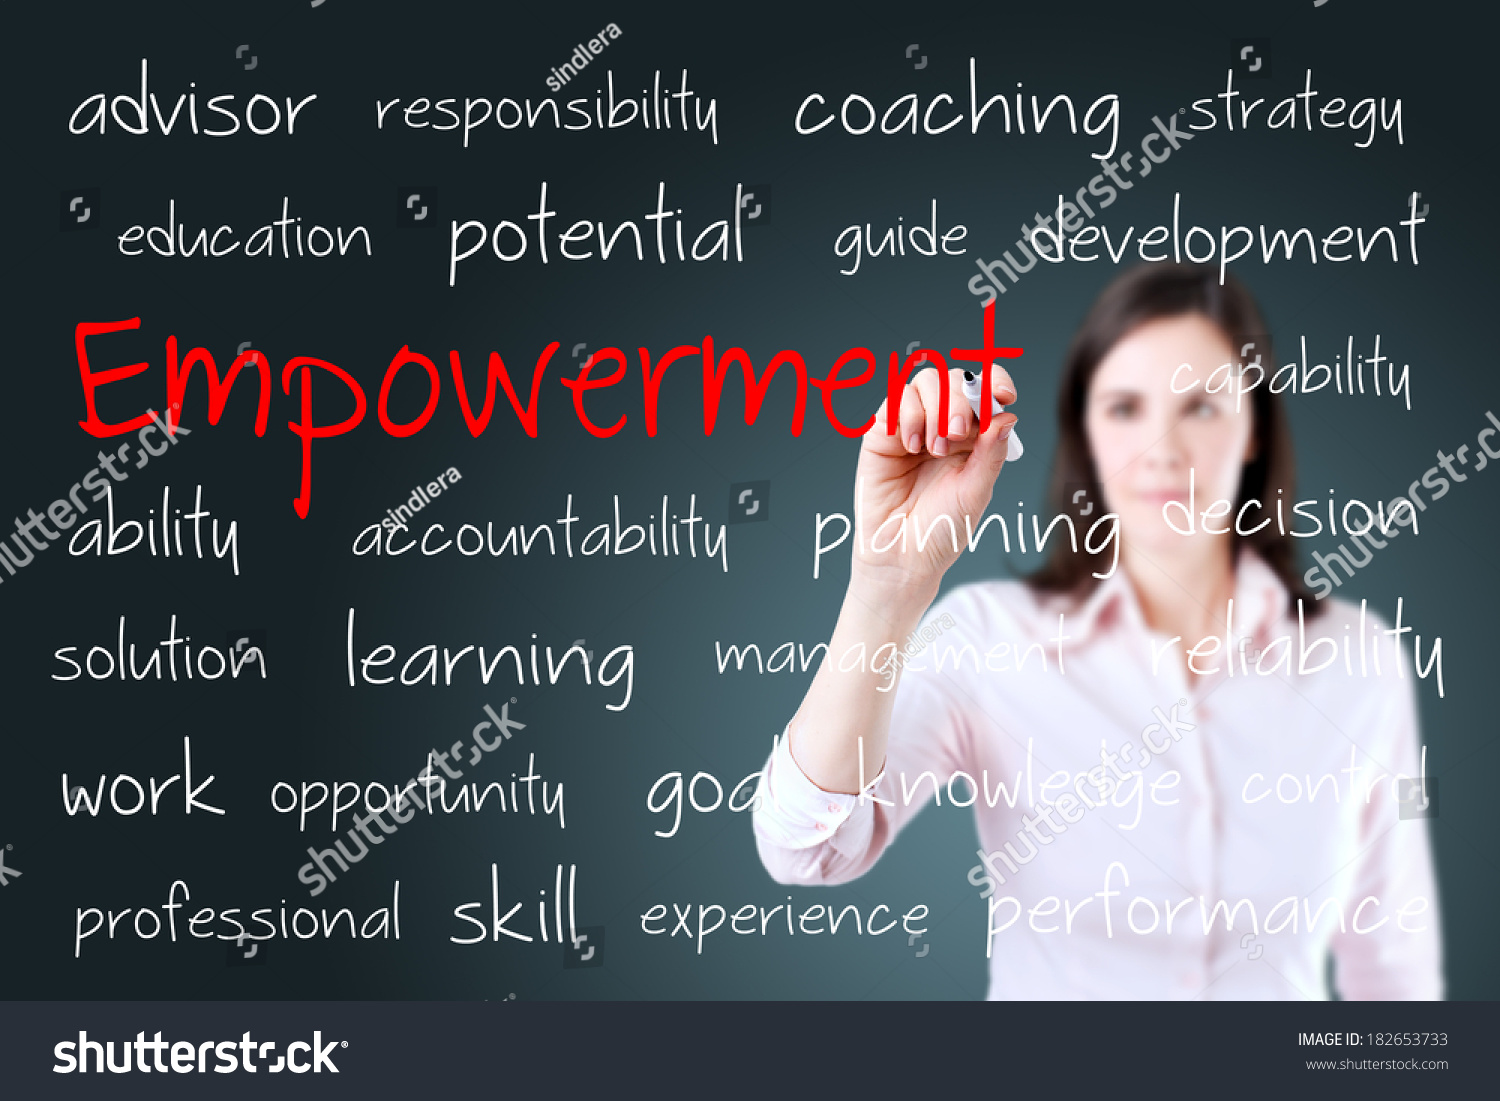 empowering your organization essay Empowerment is the process of obtaining basic opportunities for marginalized people, either directly by those people, or through the help of non-marginalized others who share their own access to these opportunities it also includes actively thwarting attempts to deny those opportunities empowerment also includes encouraging, and developing the skills for, self-sufficiency, with a focus on.